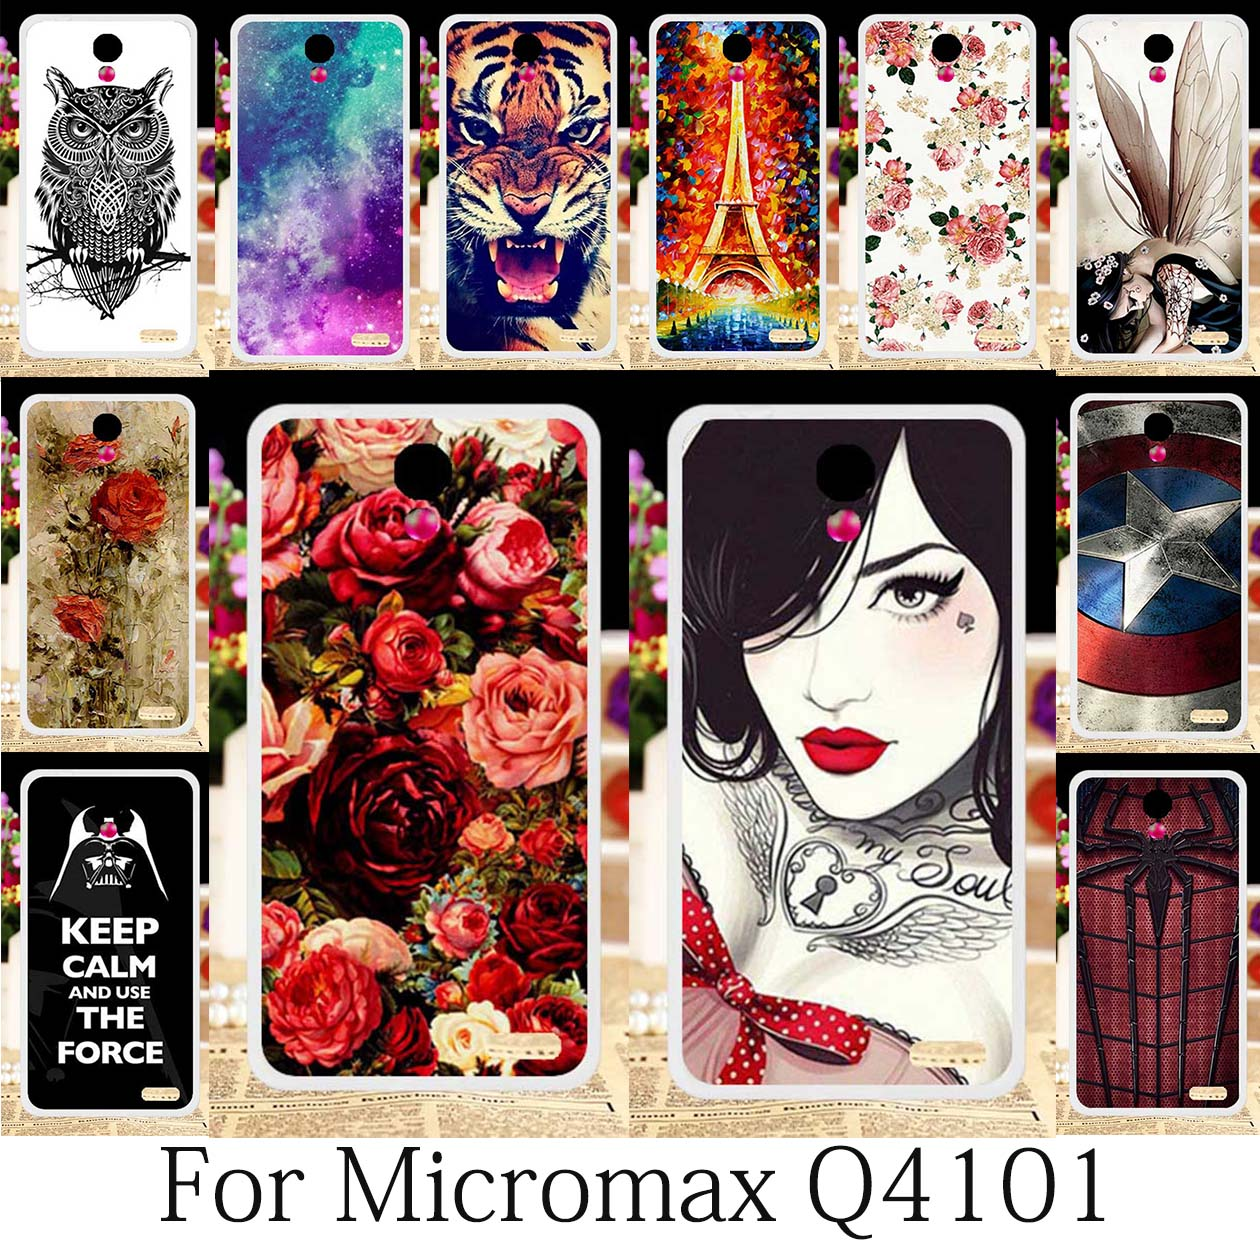 TAOYUNXI Cases For Micromax Vdeo 2 Q4101 Cases Micromax Bolt Warrior 1 Plus Q4101 Case Silicone Girls Cases Coque Anime 4.5inch